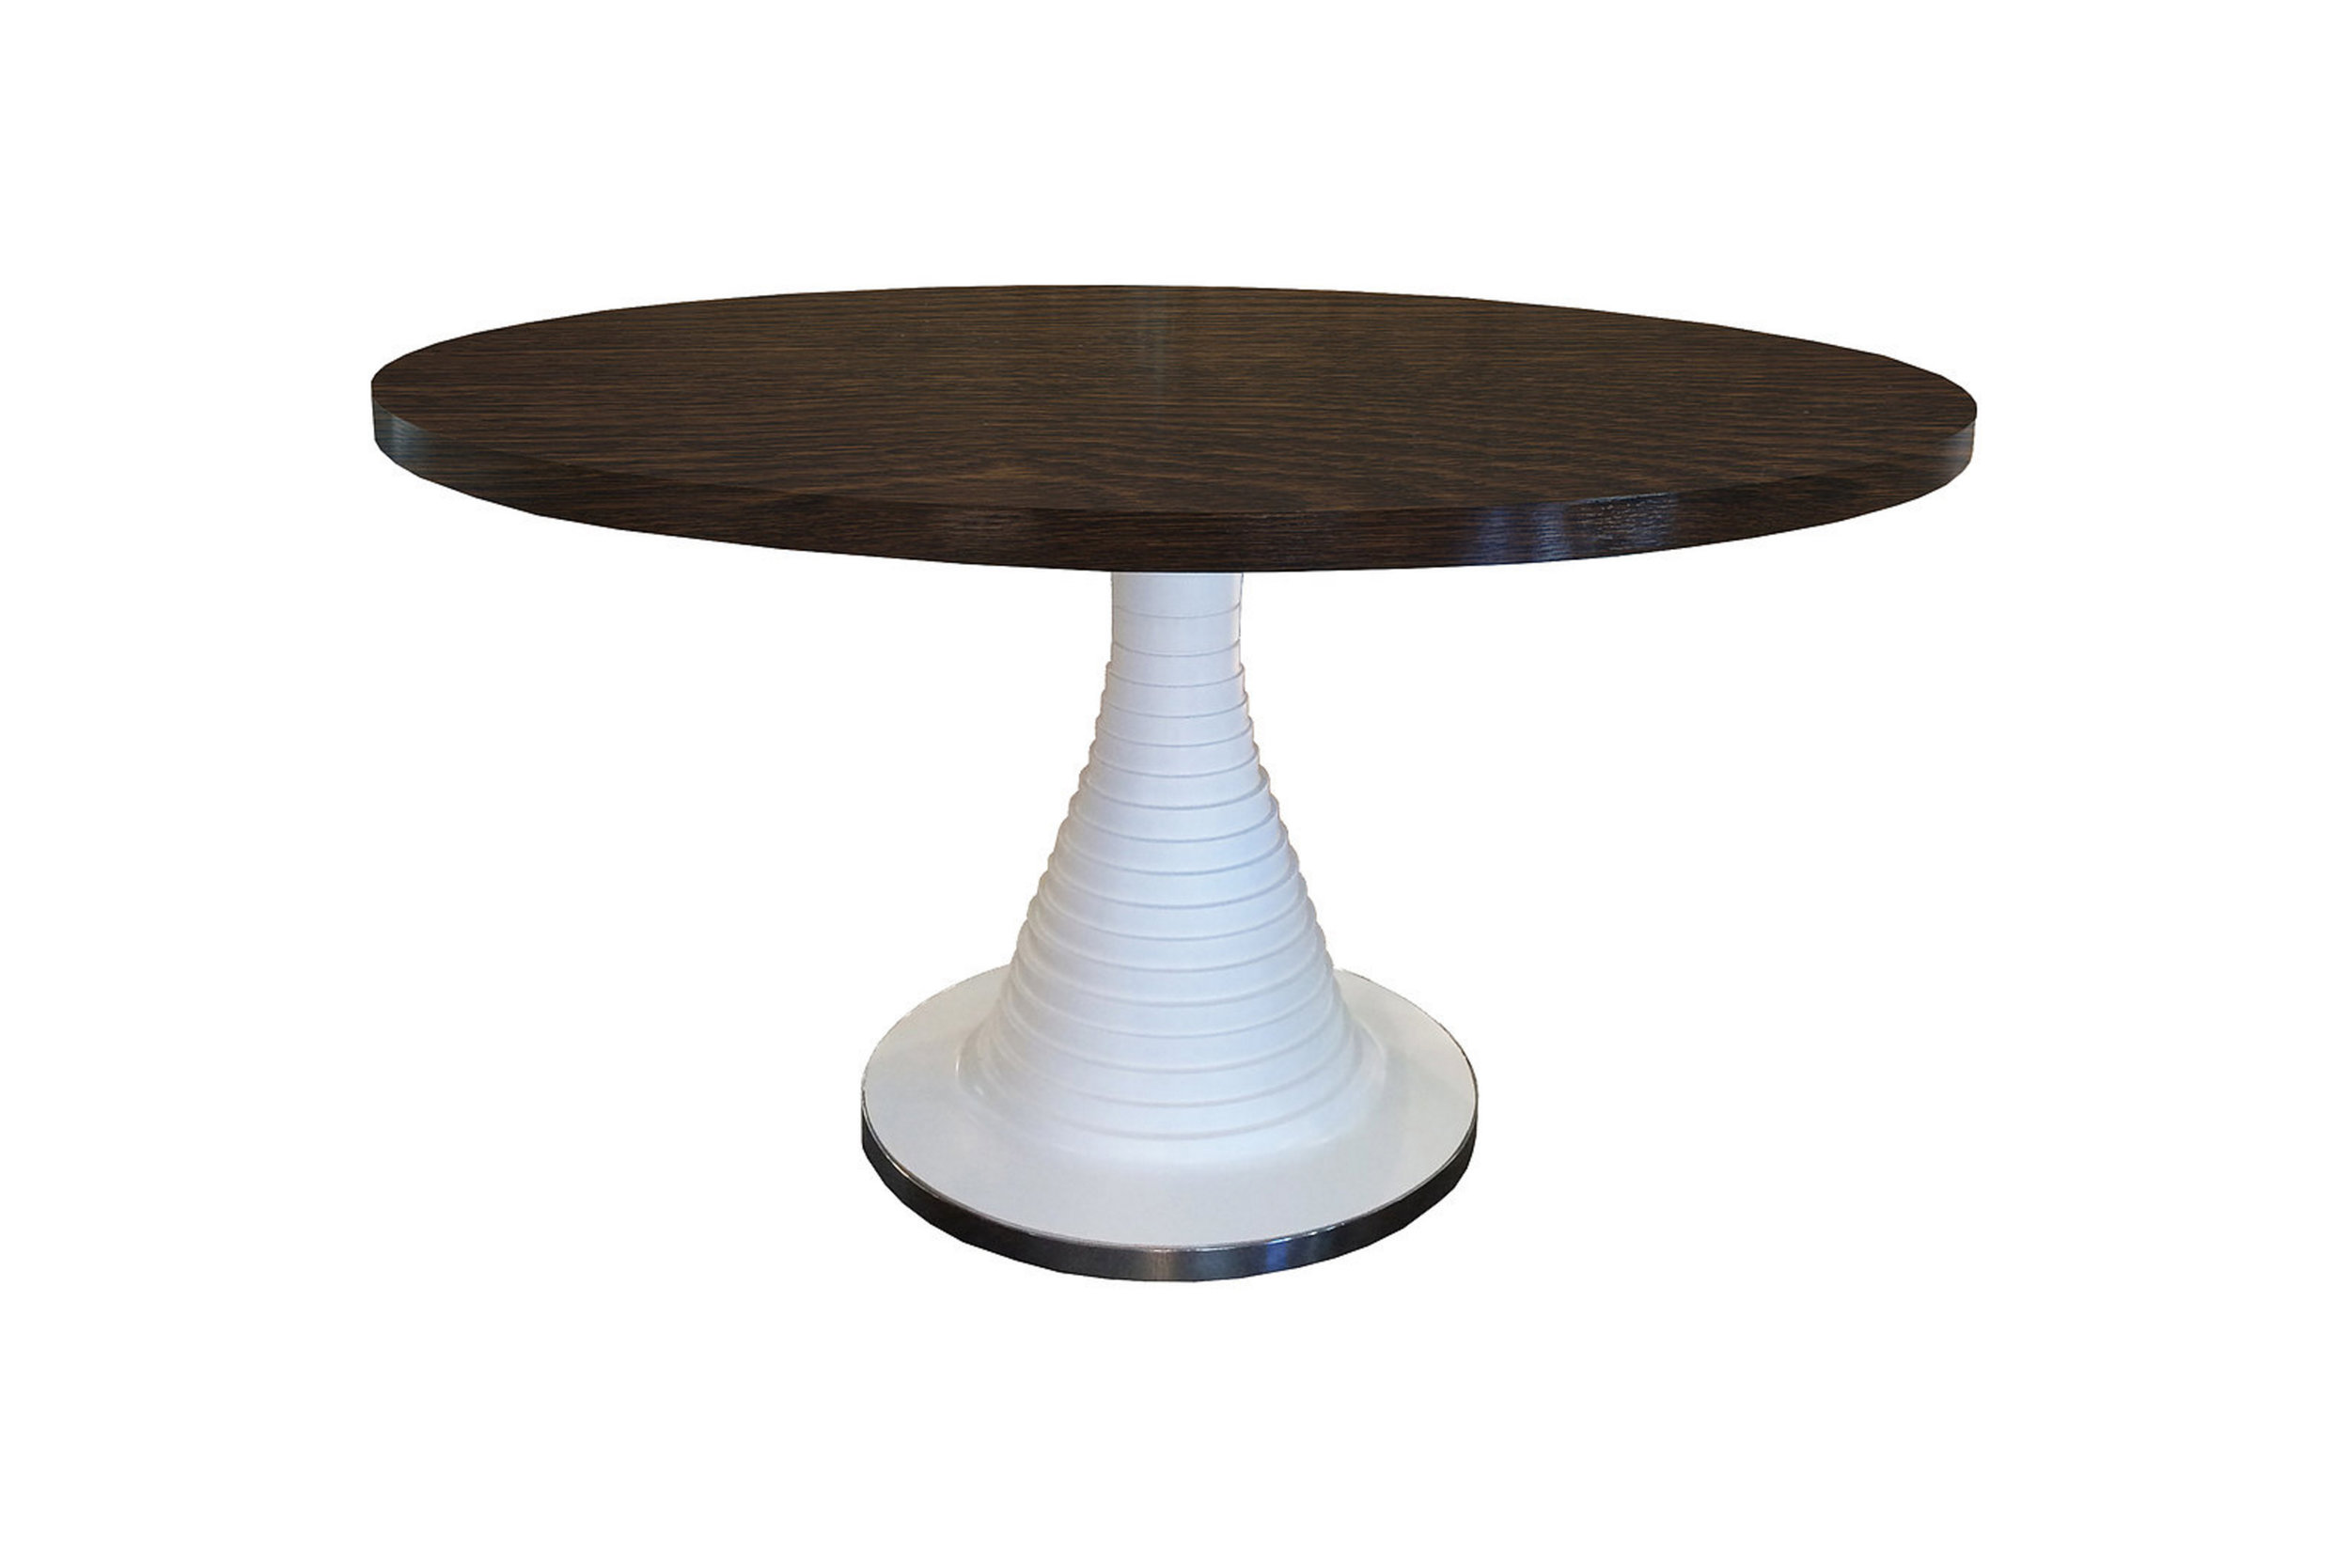 AZTEC DINING TABLE